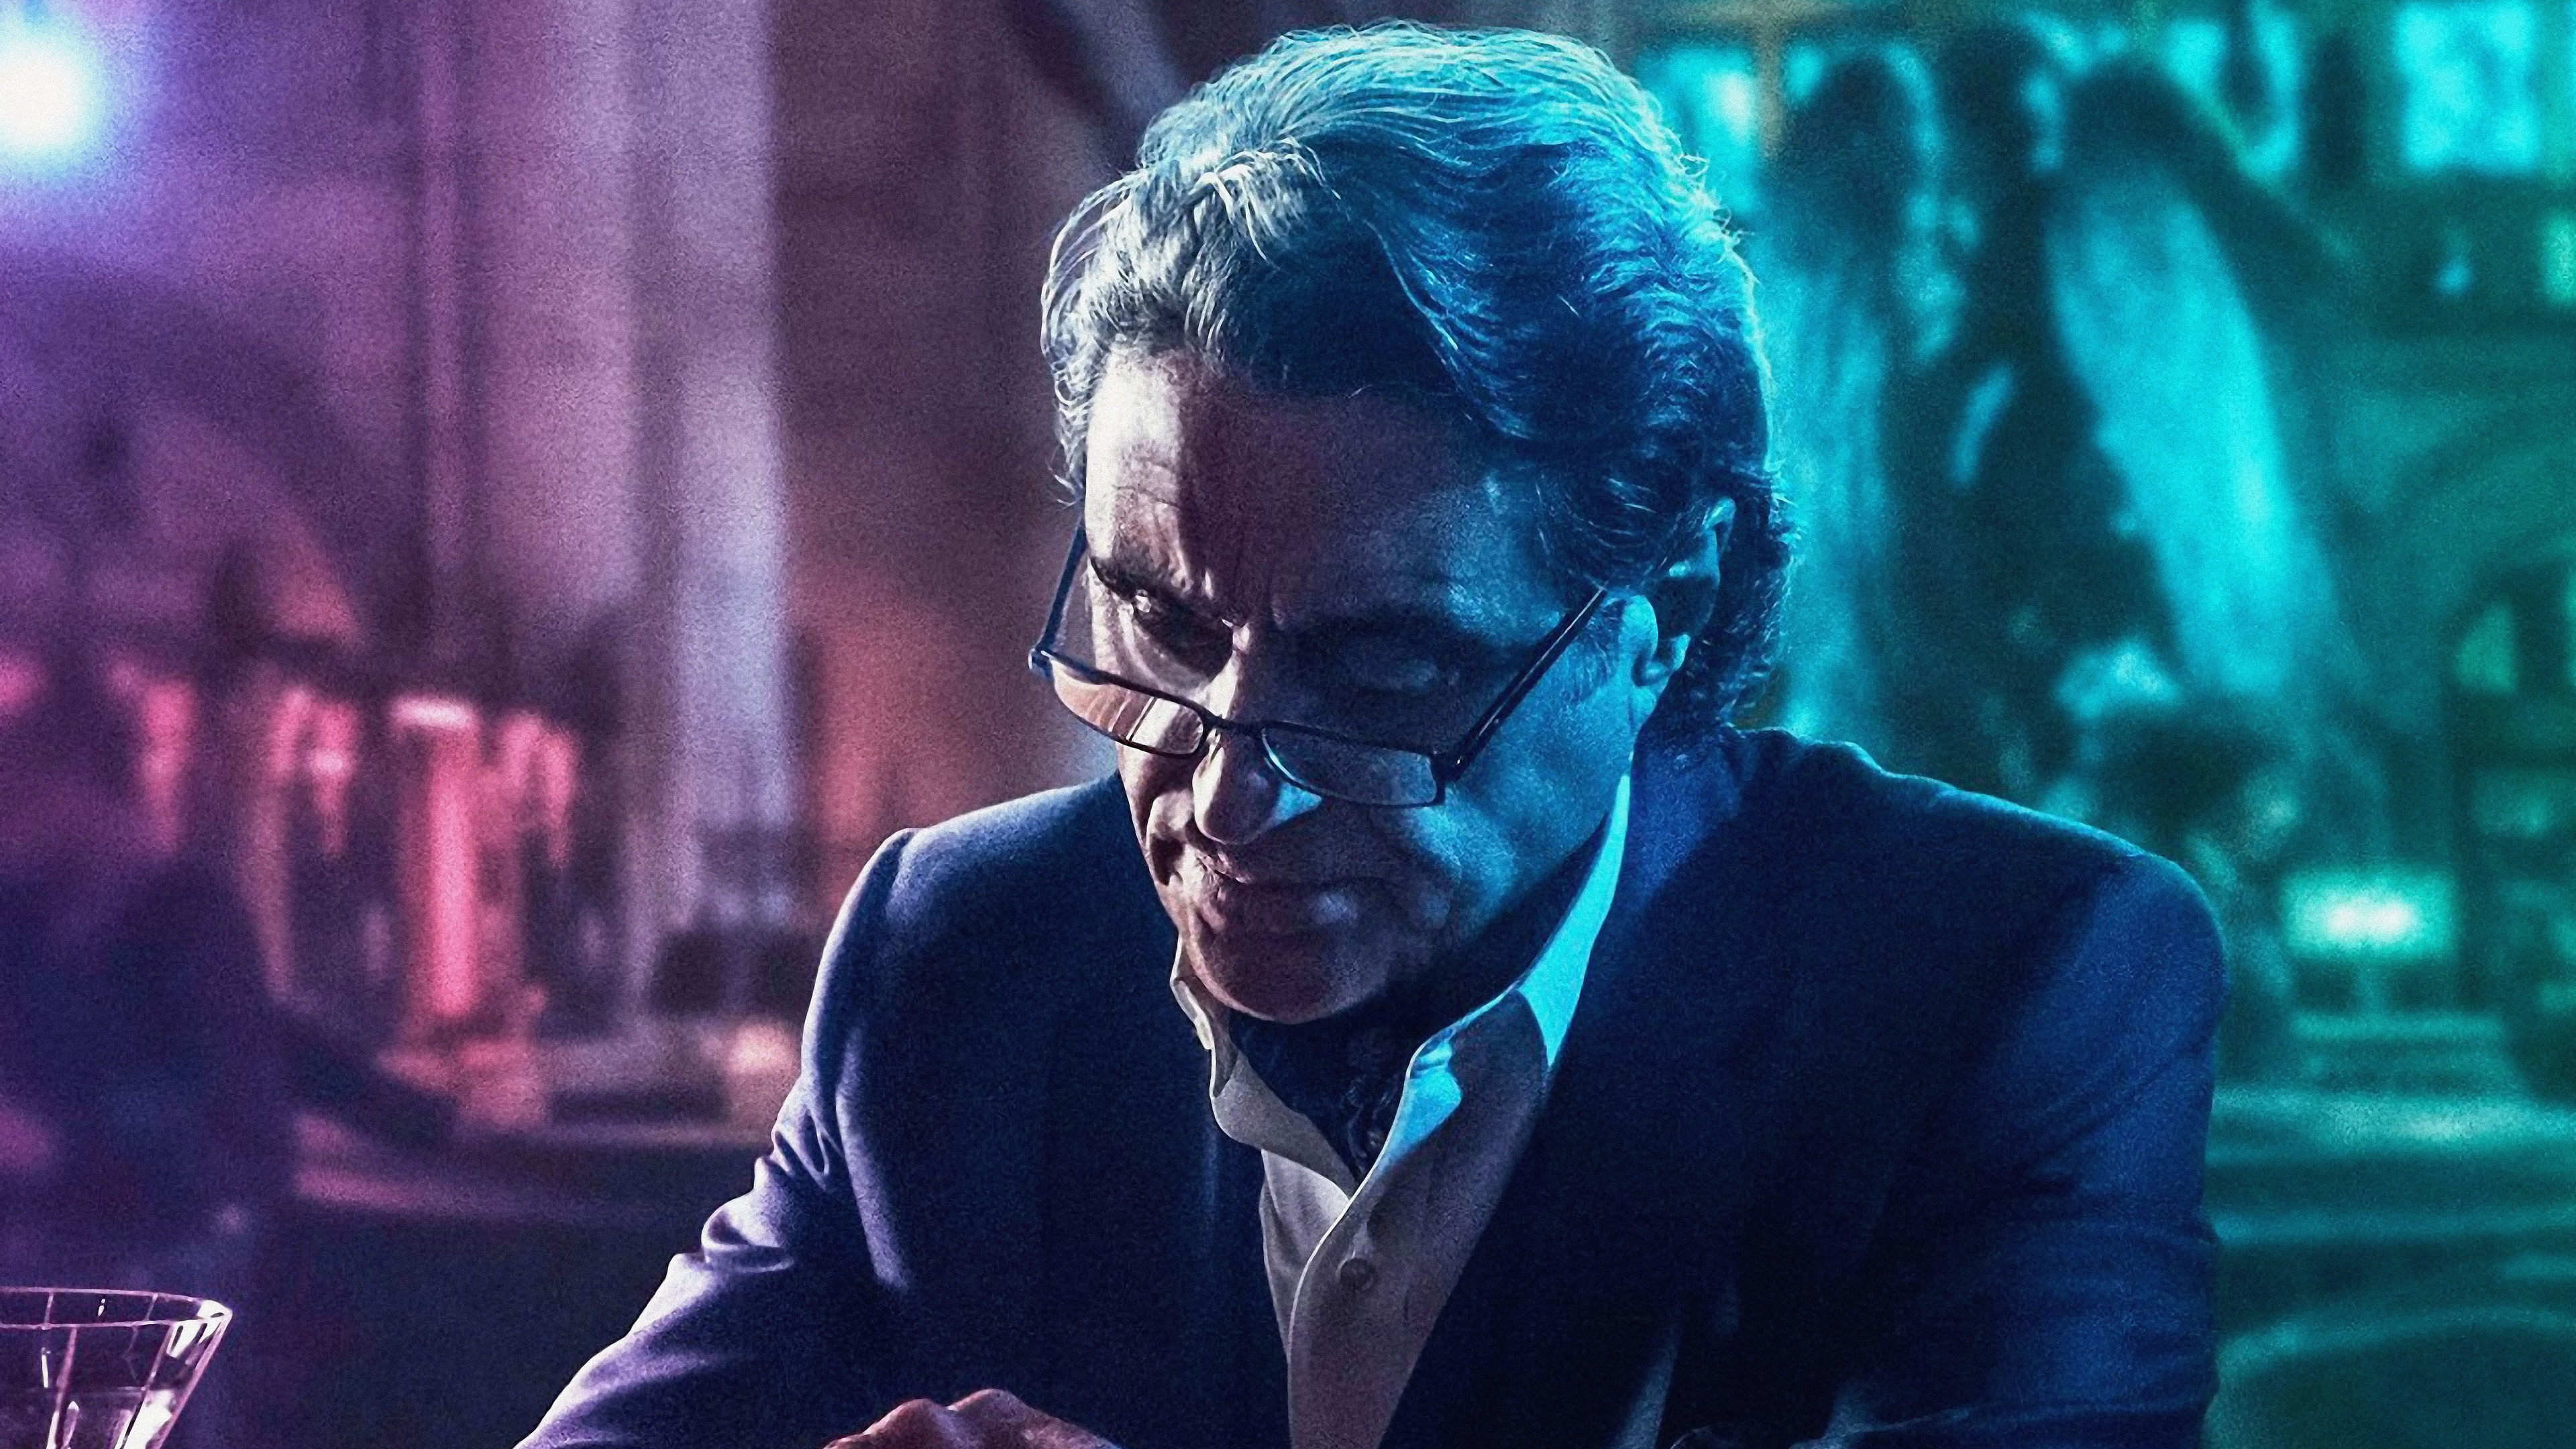 ian mcshane as winston in john wick chapter 3 parabellum 2019 4k 1555208402 - Ian McShane As Winston In John Wick Chapter 3 Parabellum 2019 4k - movies wallpapers, john wick chapter 3 wallpapers, john wick 3 wallpapers, john wick 3 parabellum wallpapers, hd-wallpapers, 4k-wallpapers, 2019 movies wallpapers